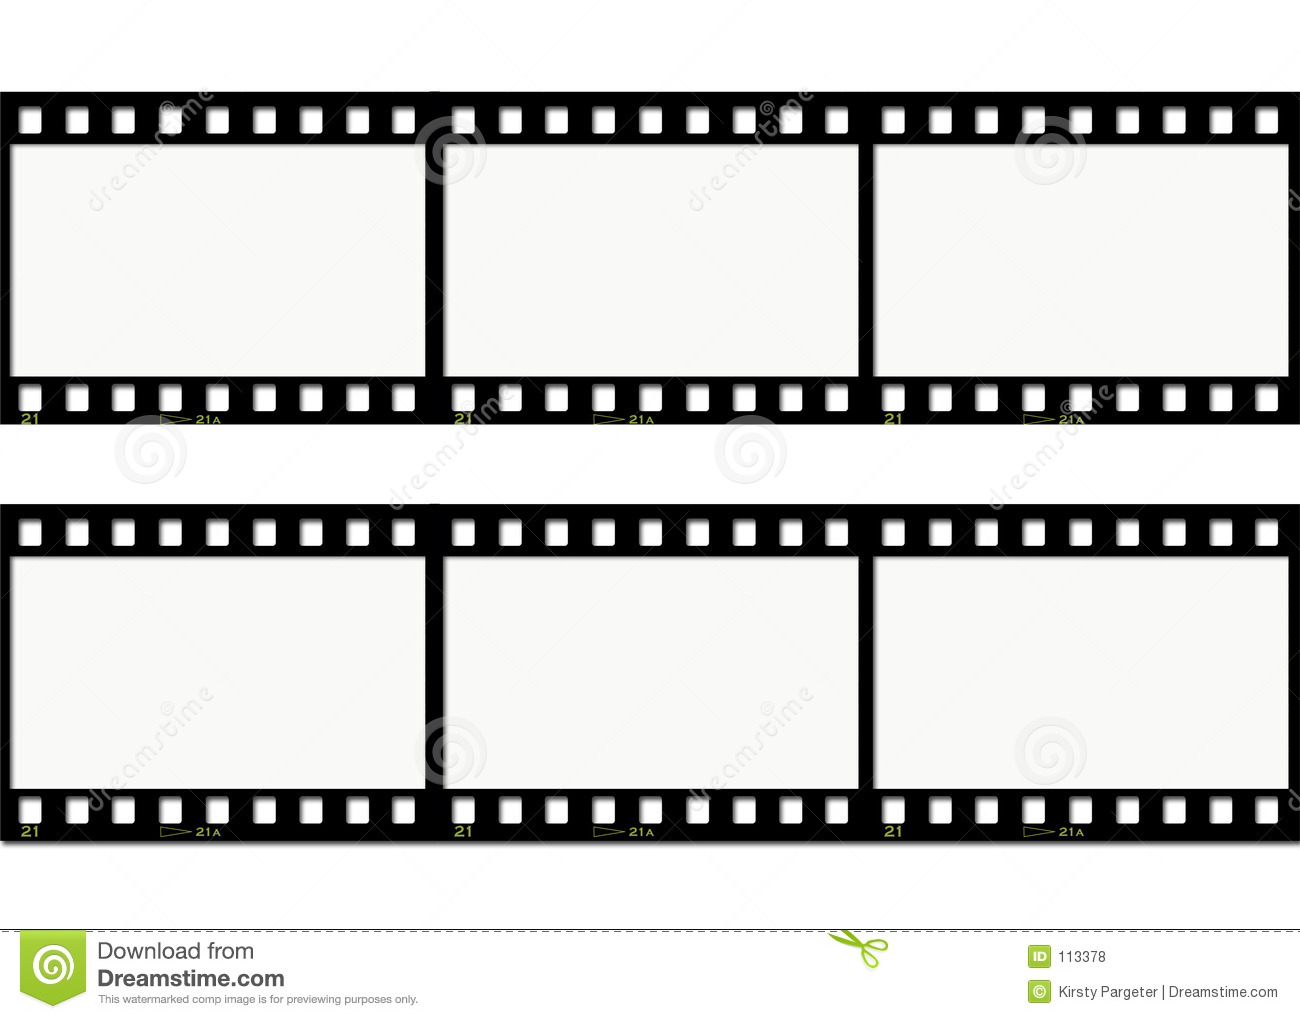 Film background royalty free stock photos image 113378